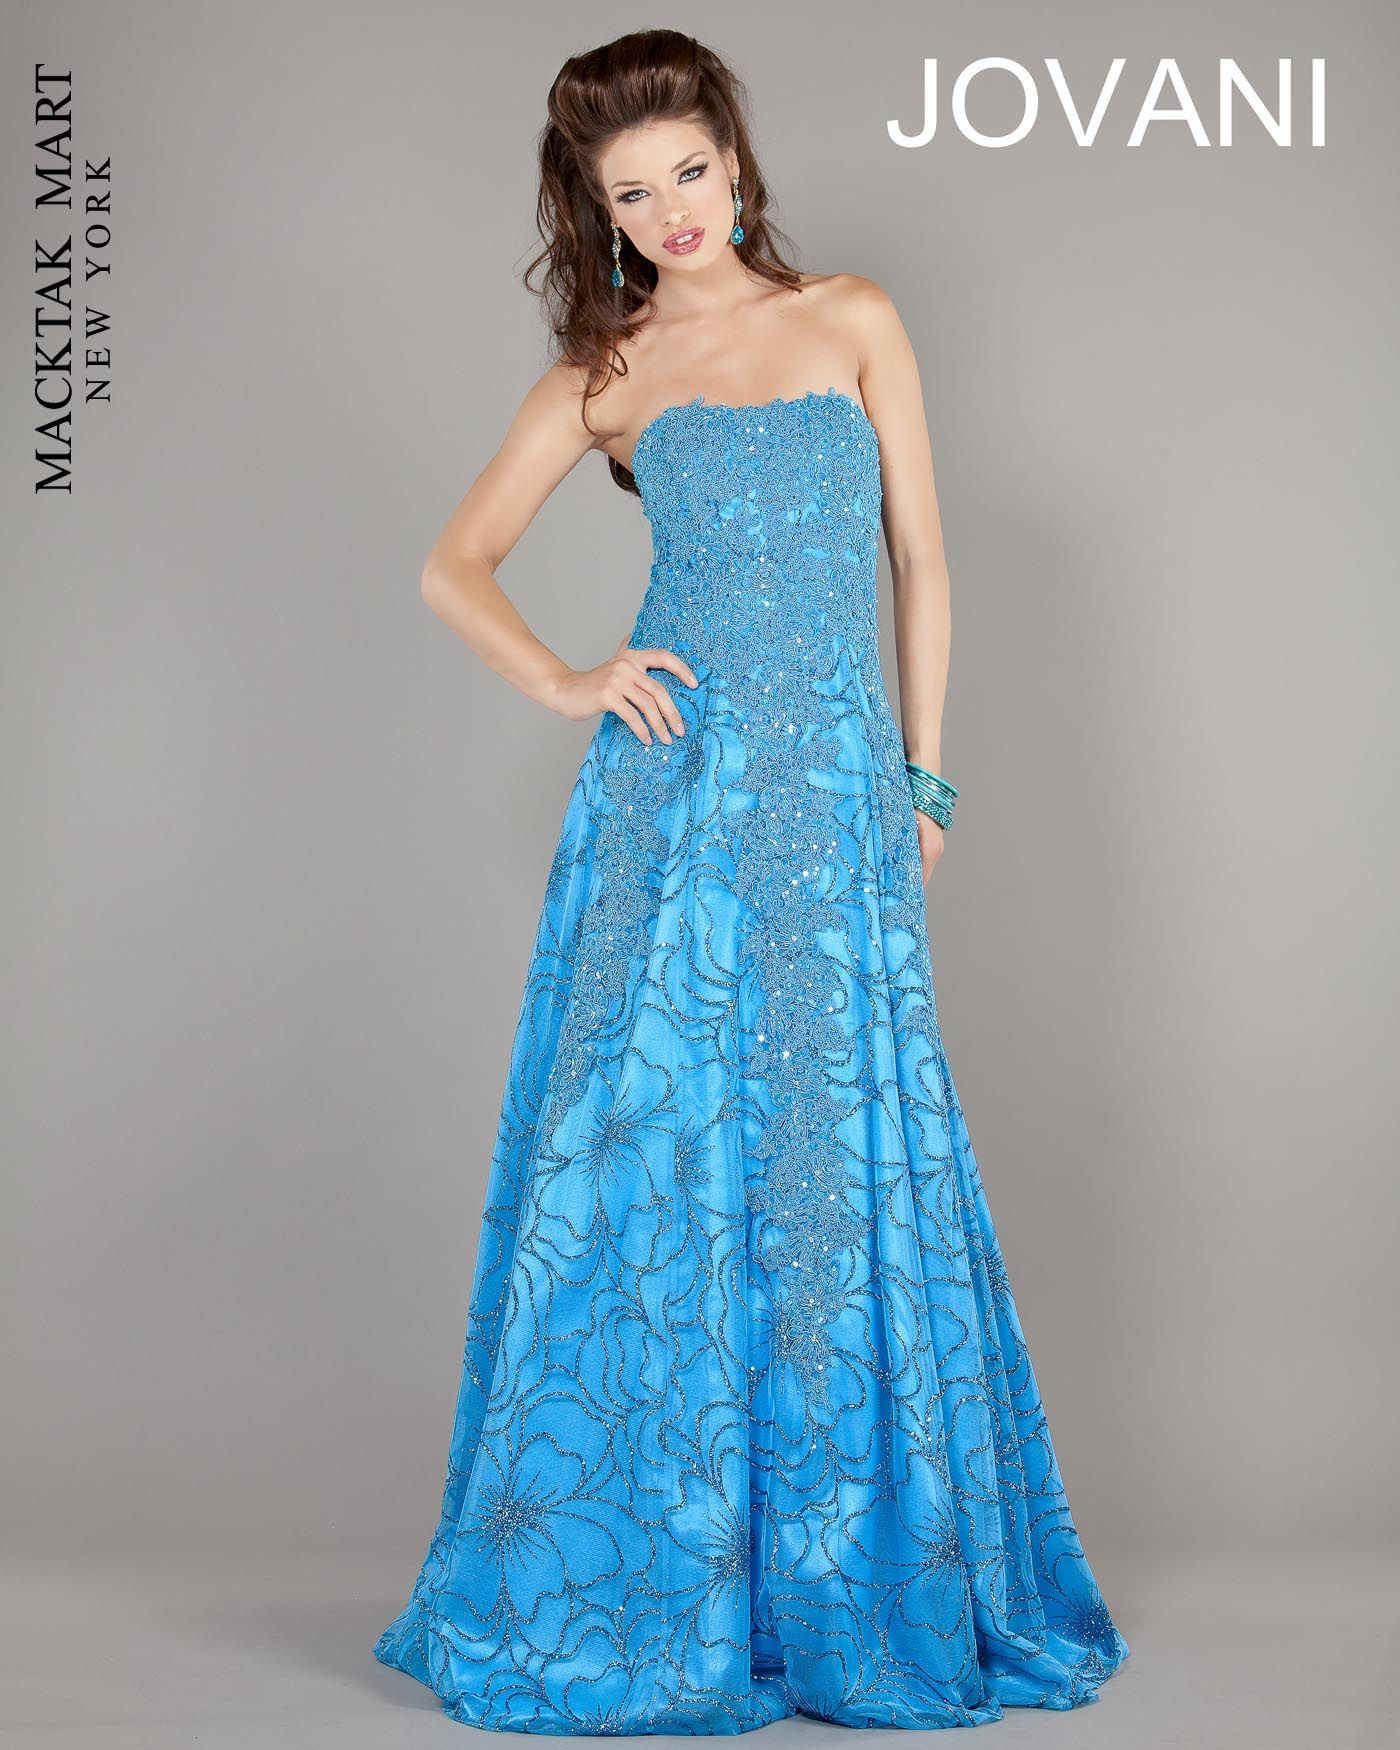 Awesome Jovani 2013 Prom Dresses Photo - All Wedding Dresses ...